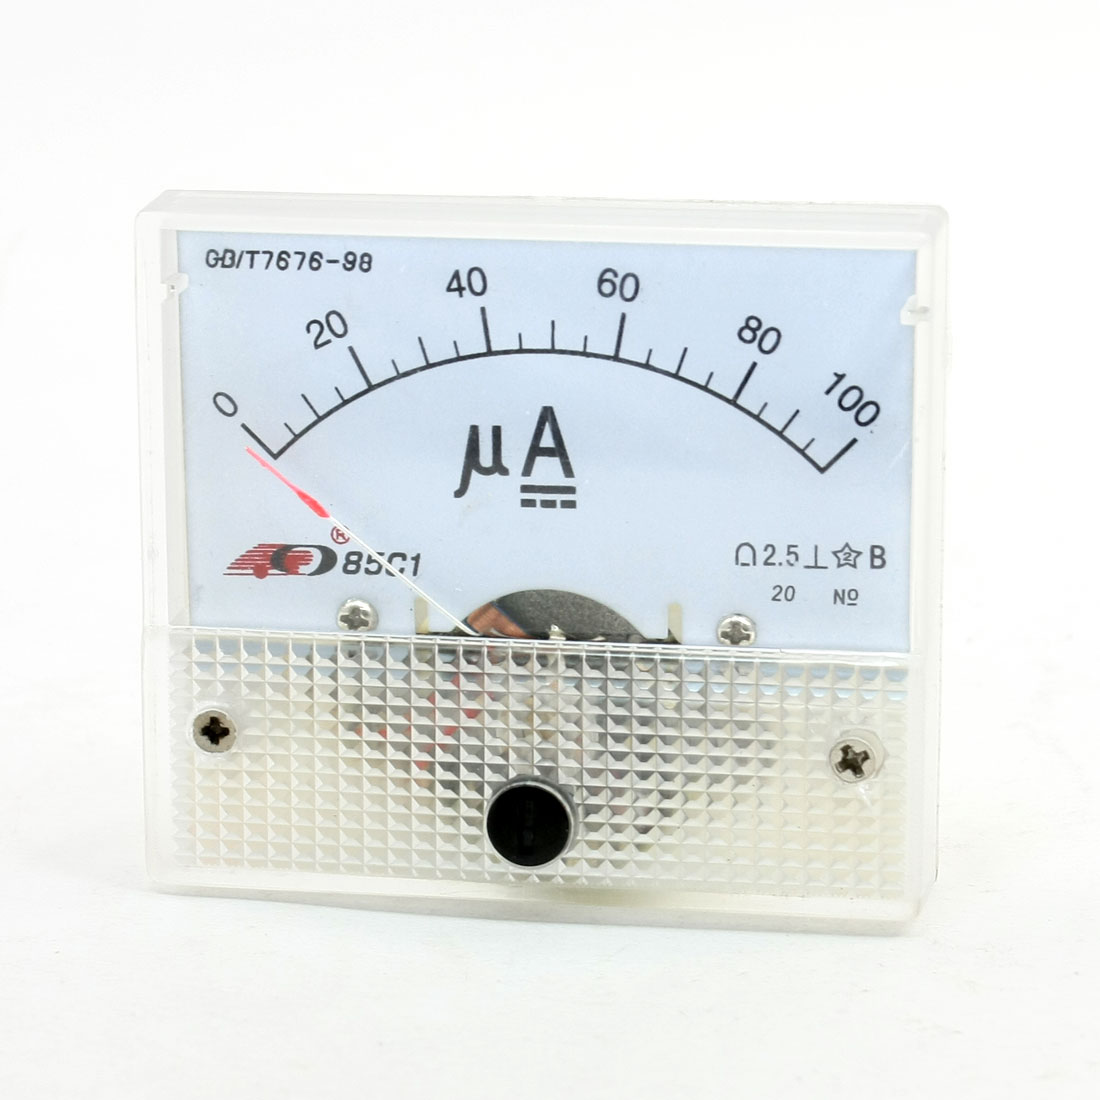 85C1 DC 0-100uA Analog Panel Meter Ammeter Gauge New